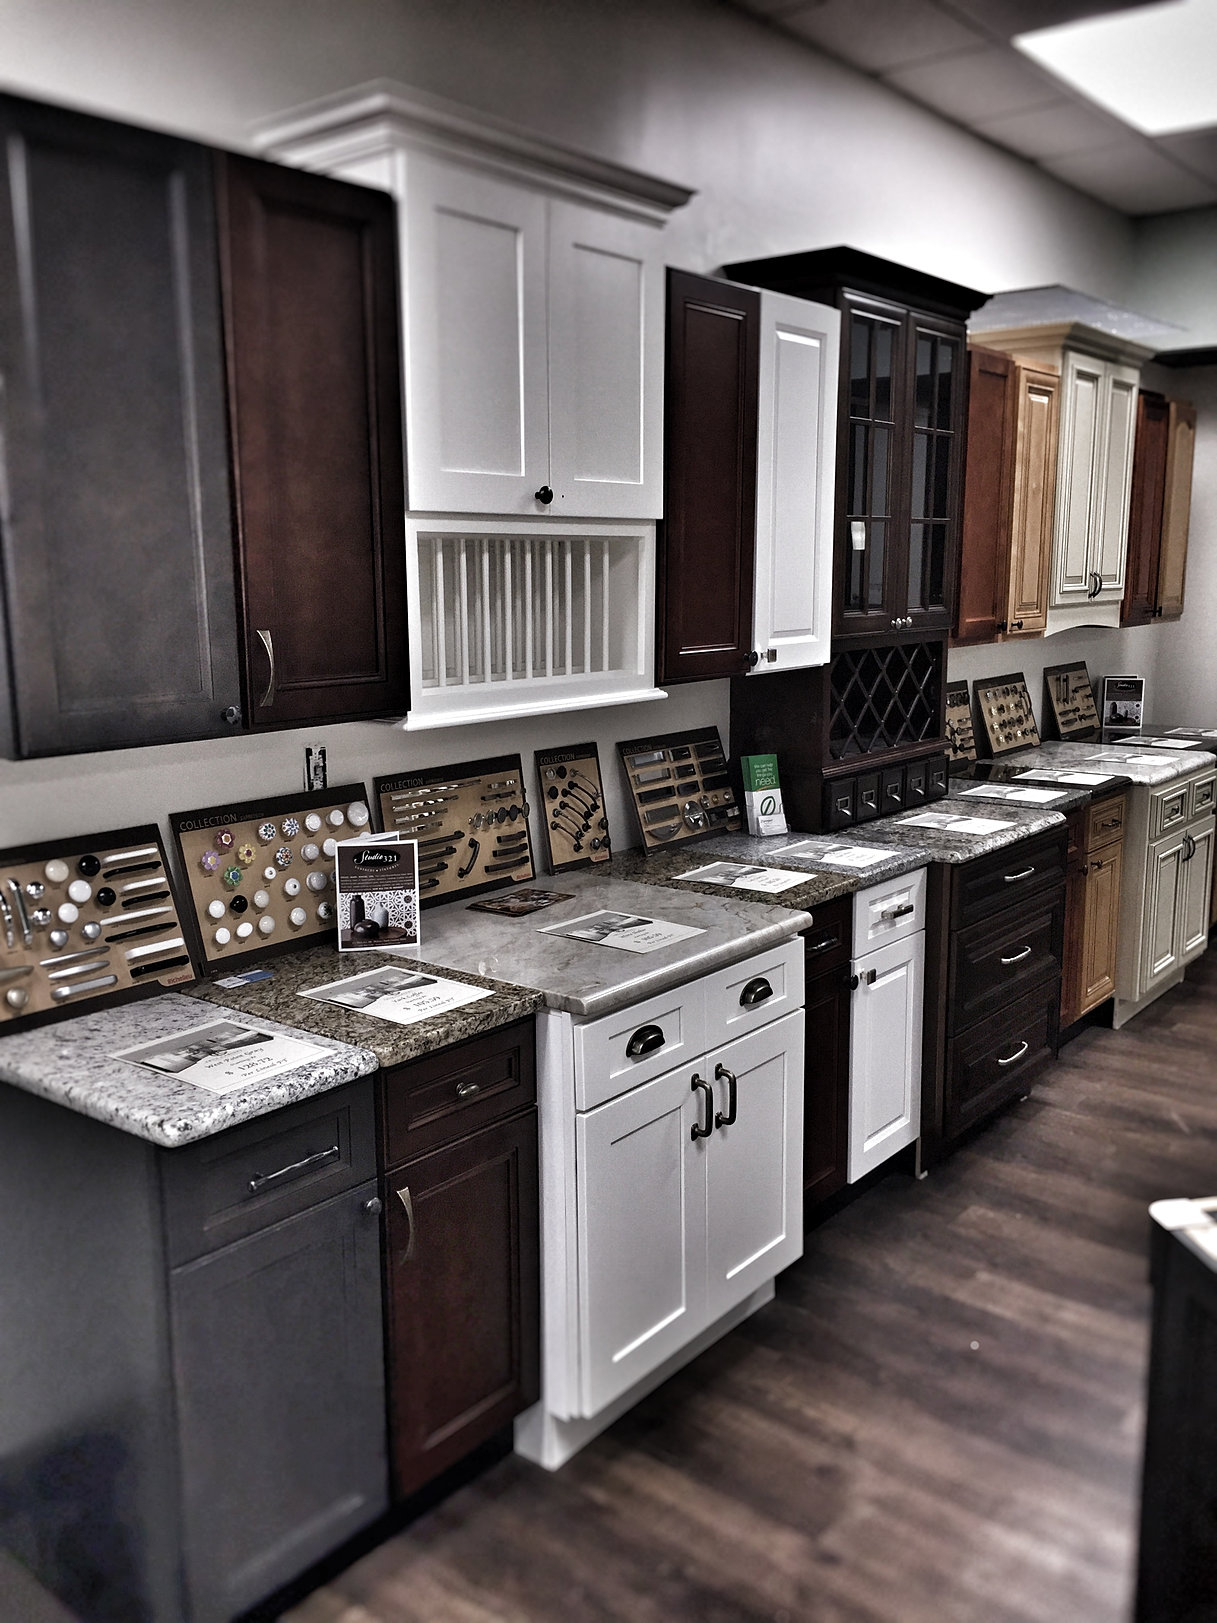 wholesale kitchen cabinets hickory nc truecabinet llc showroom rta cabinetry